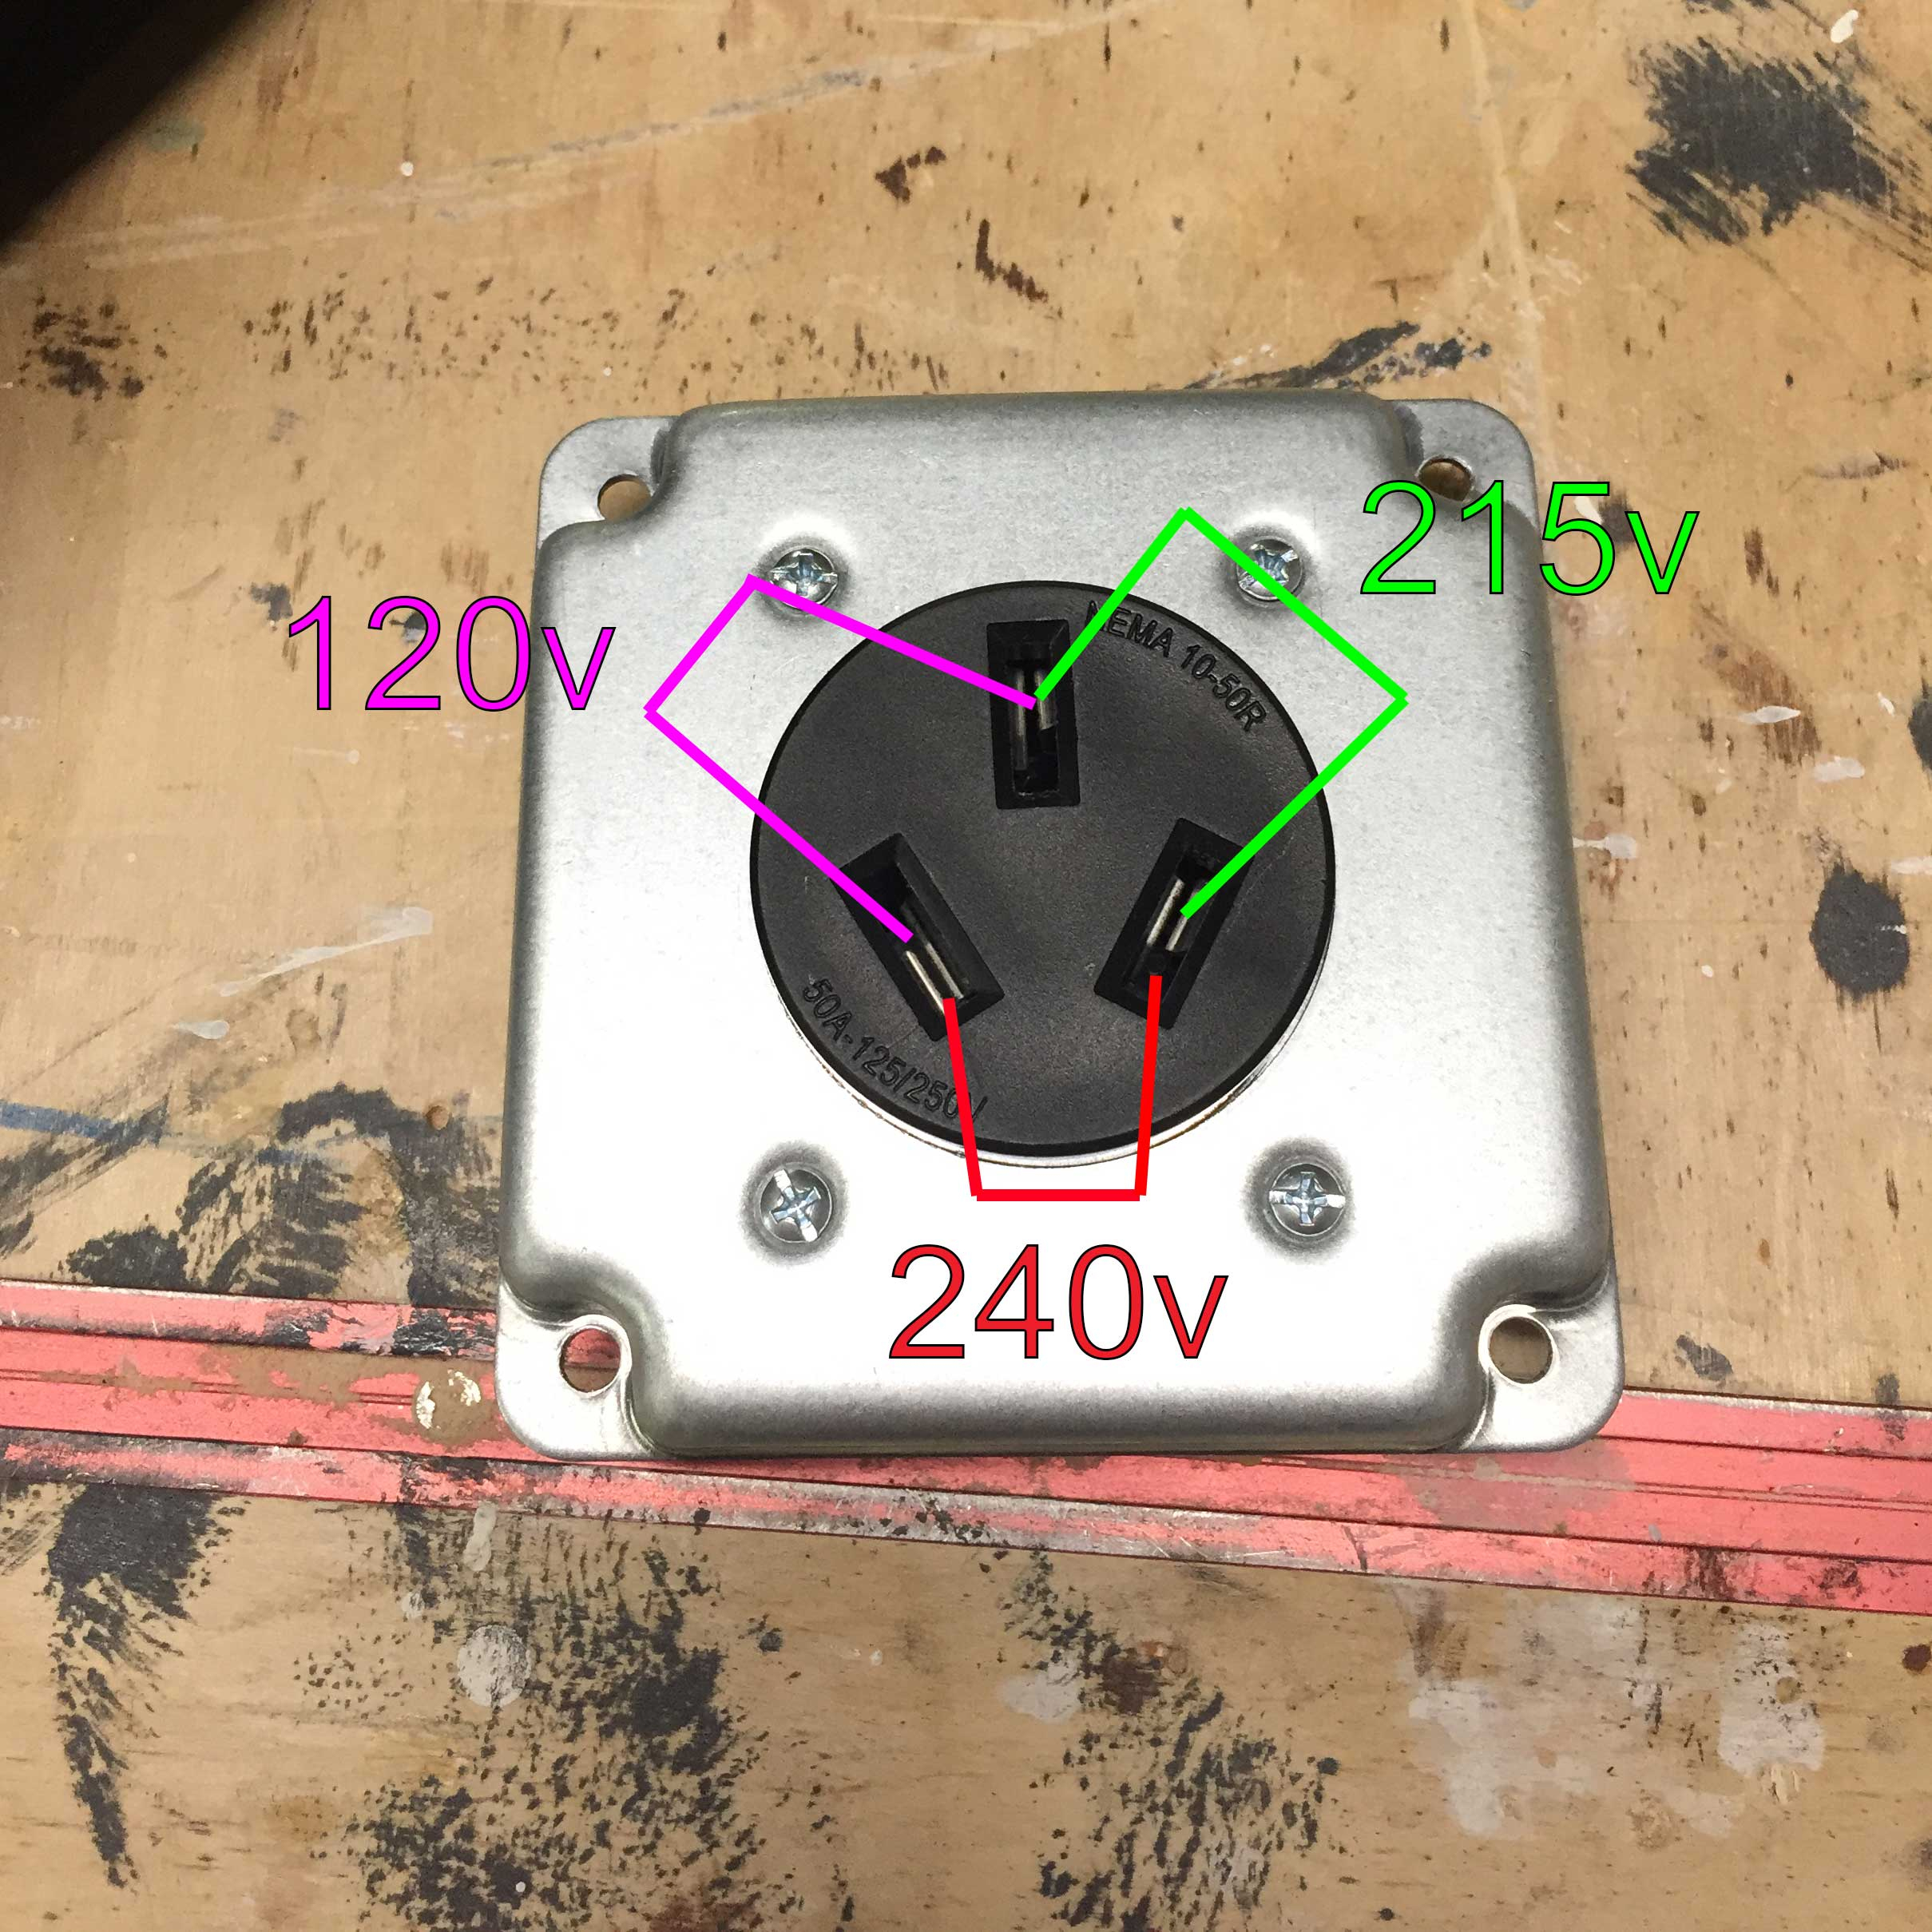 Wiring - 240V Outlet With 120V And 215V - How? - Home Improvement - 3 Wire 220 Volt Wiring Diagram